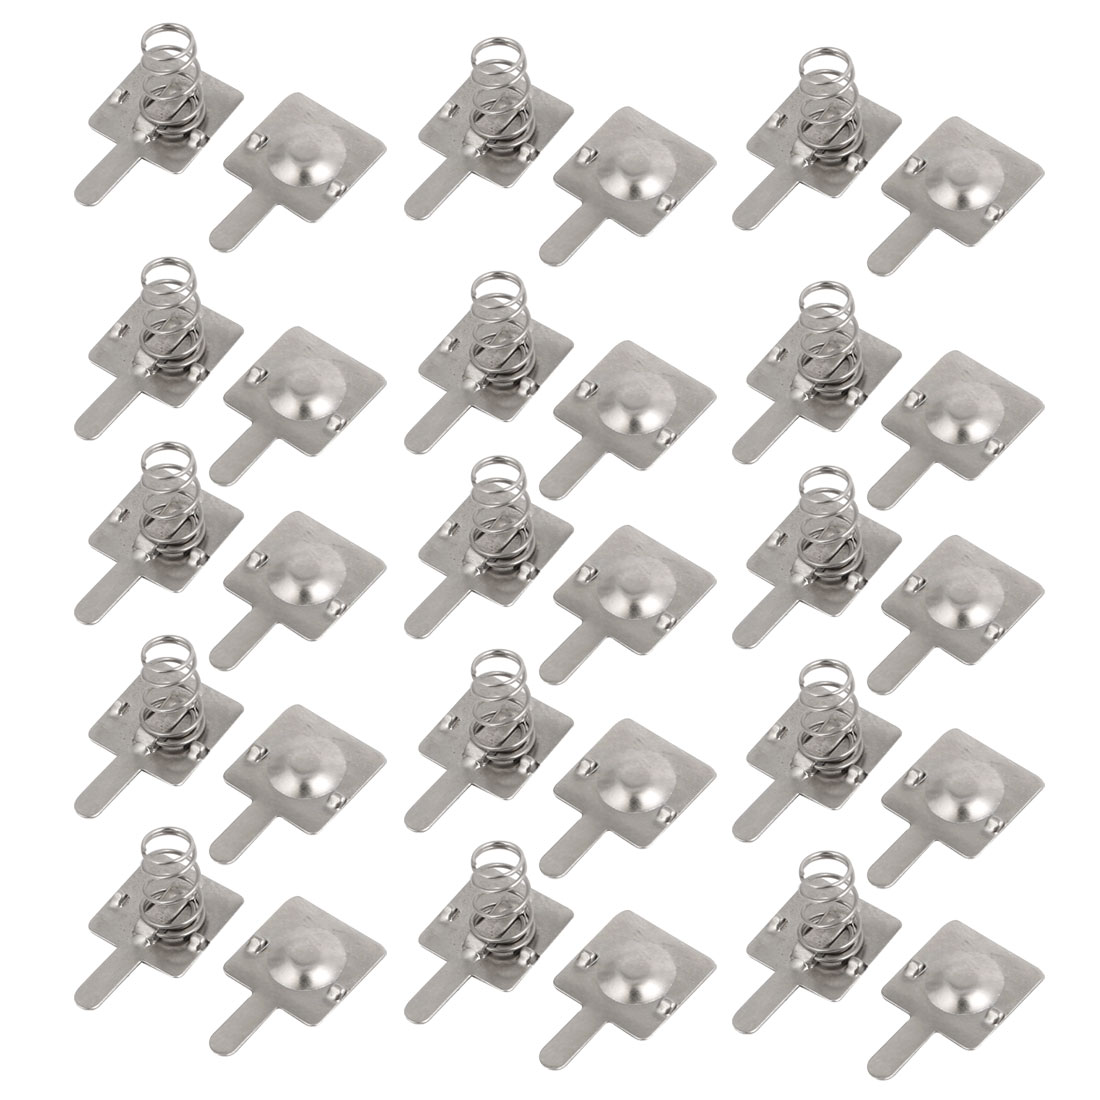 15 Pcs Metal AA Battery Spring Contacting Plate Silver Tone